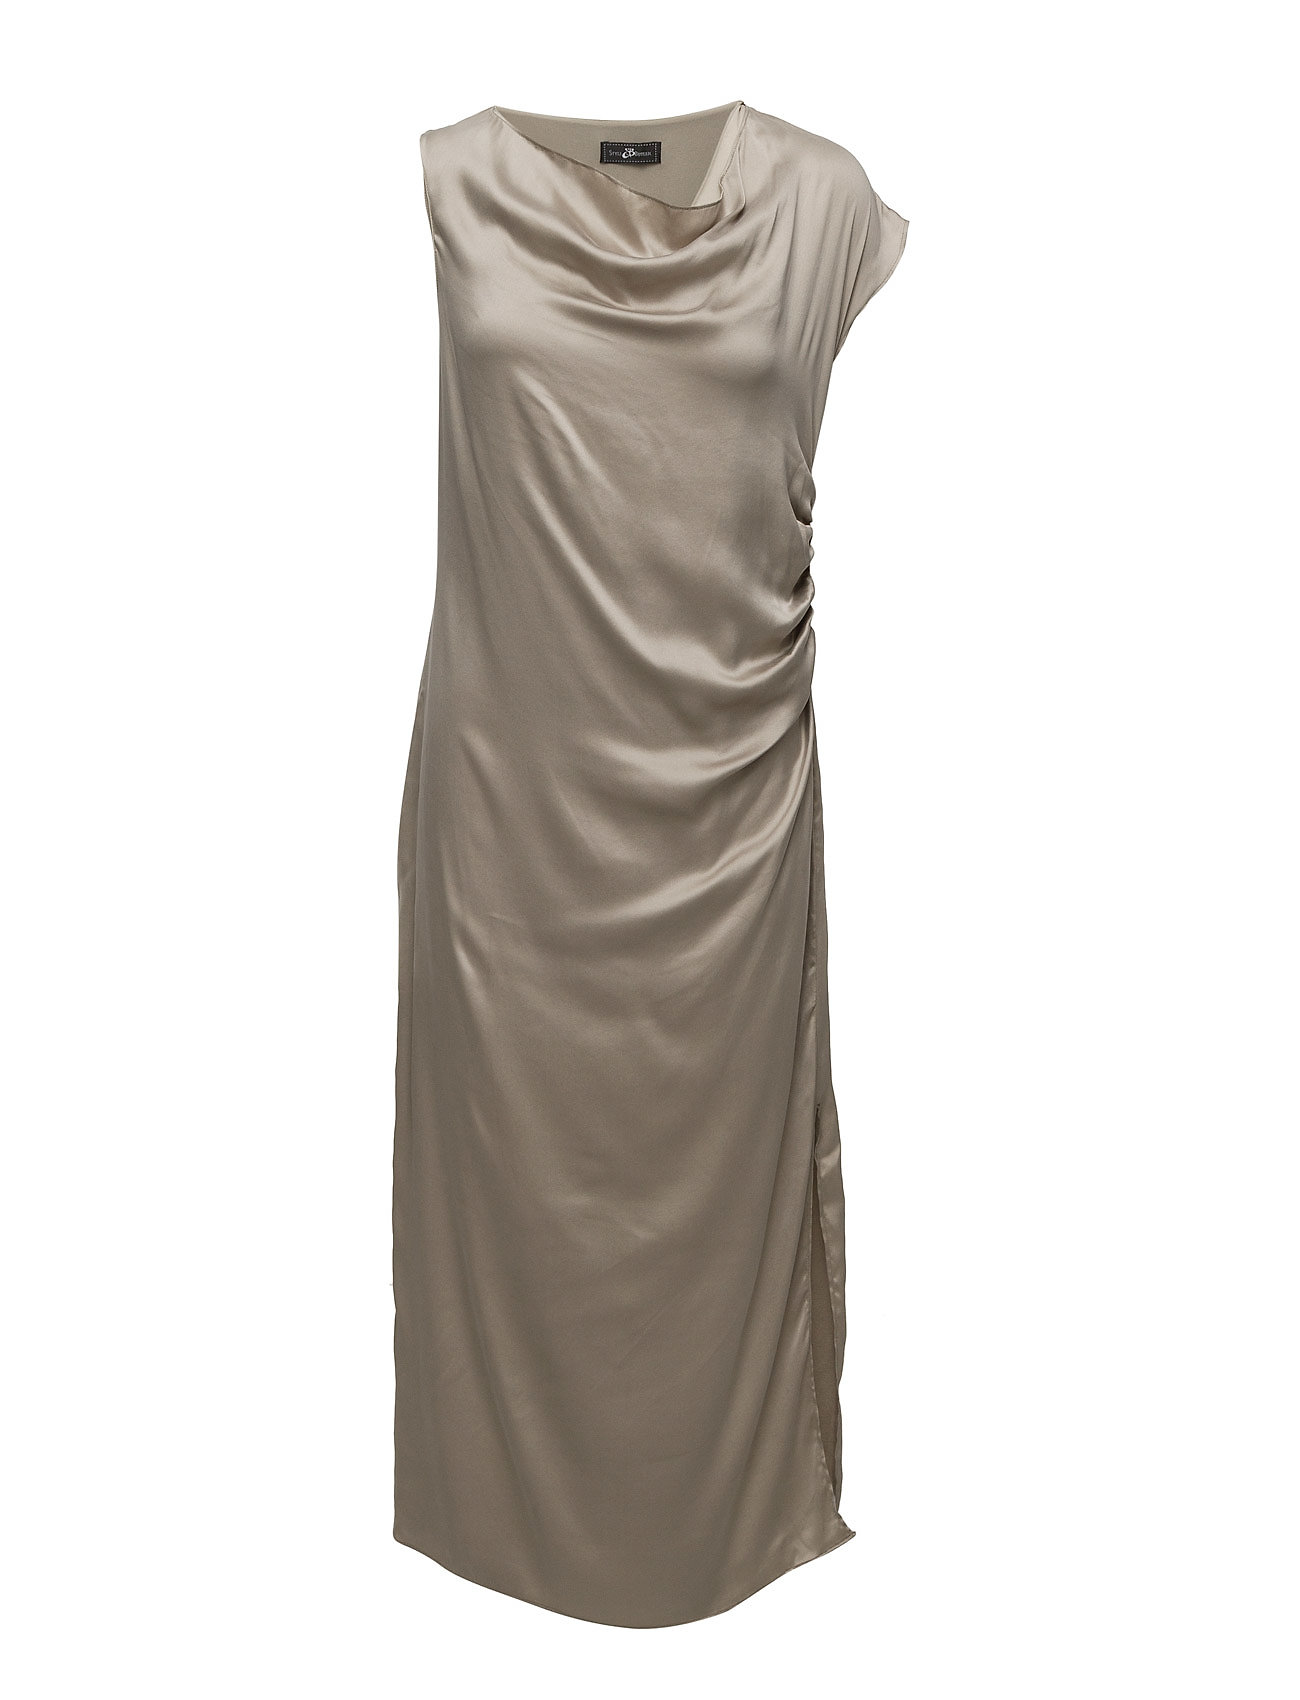 Style Butler Isidore Dress - 520 HERB